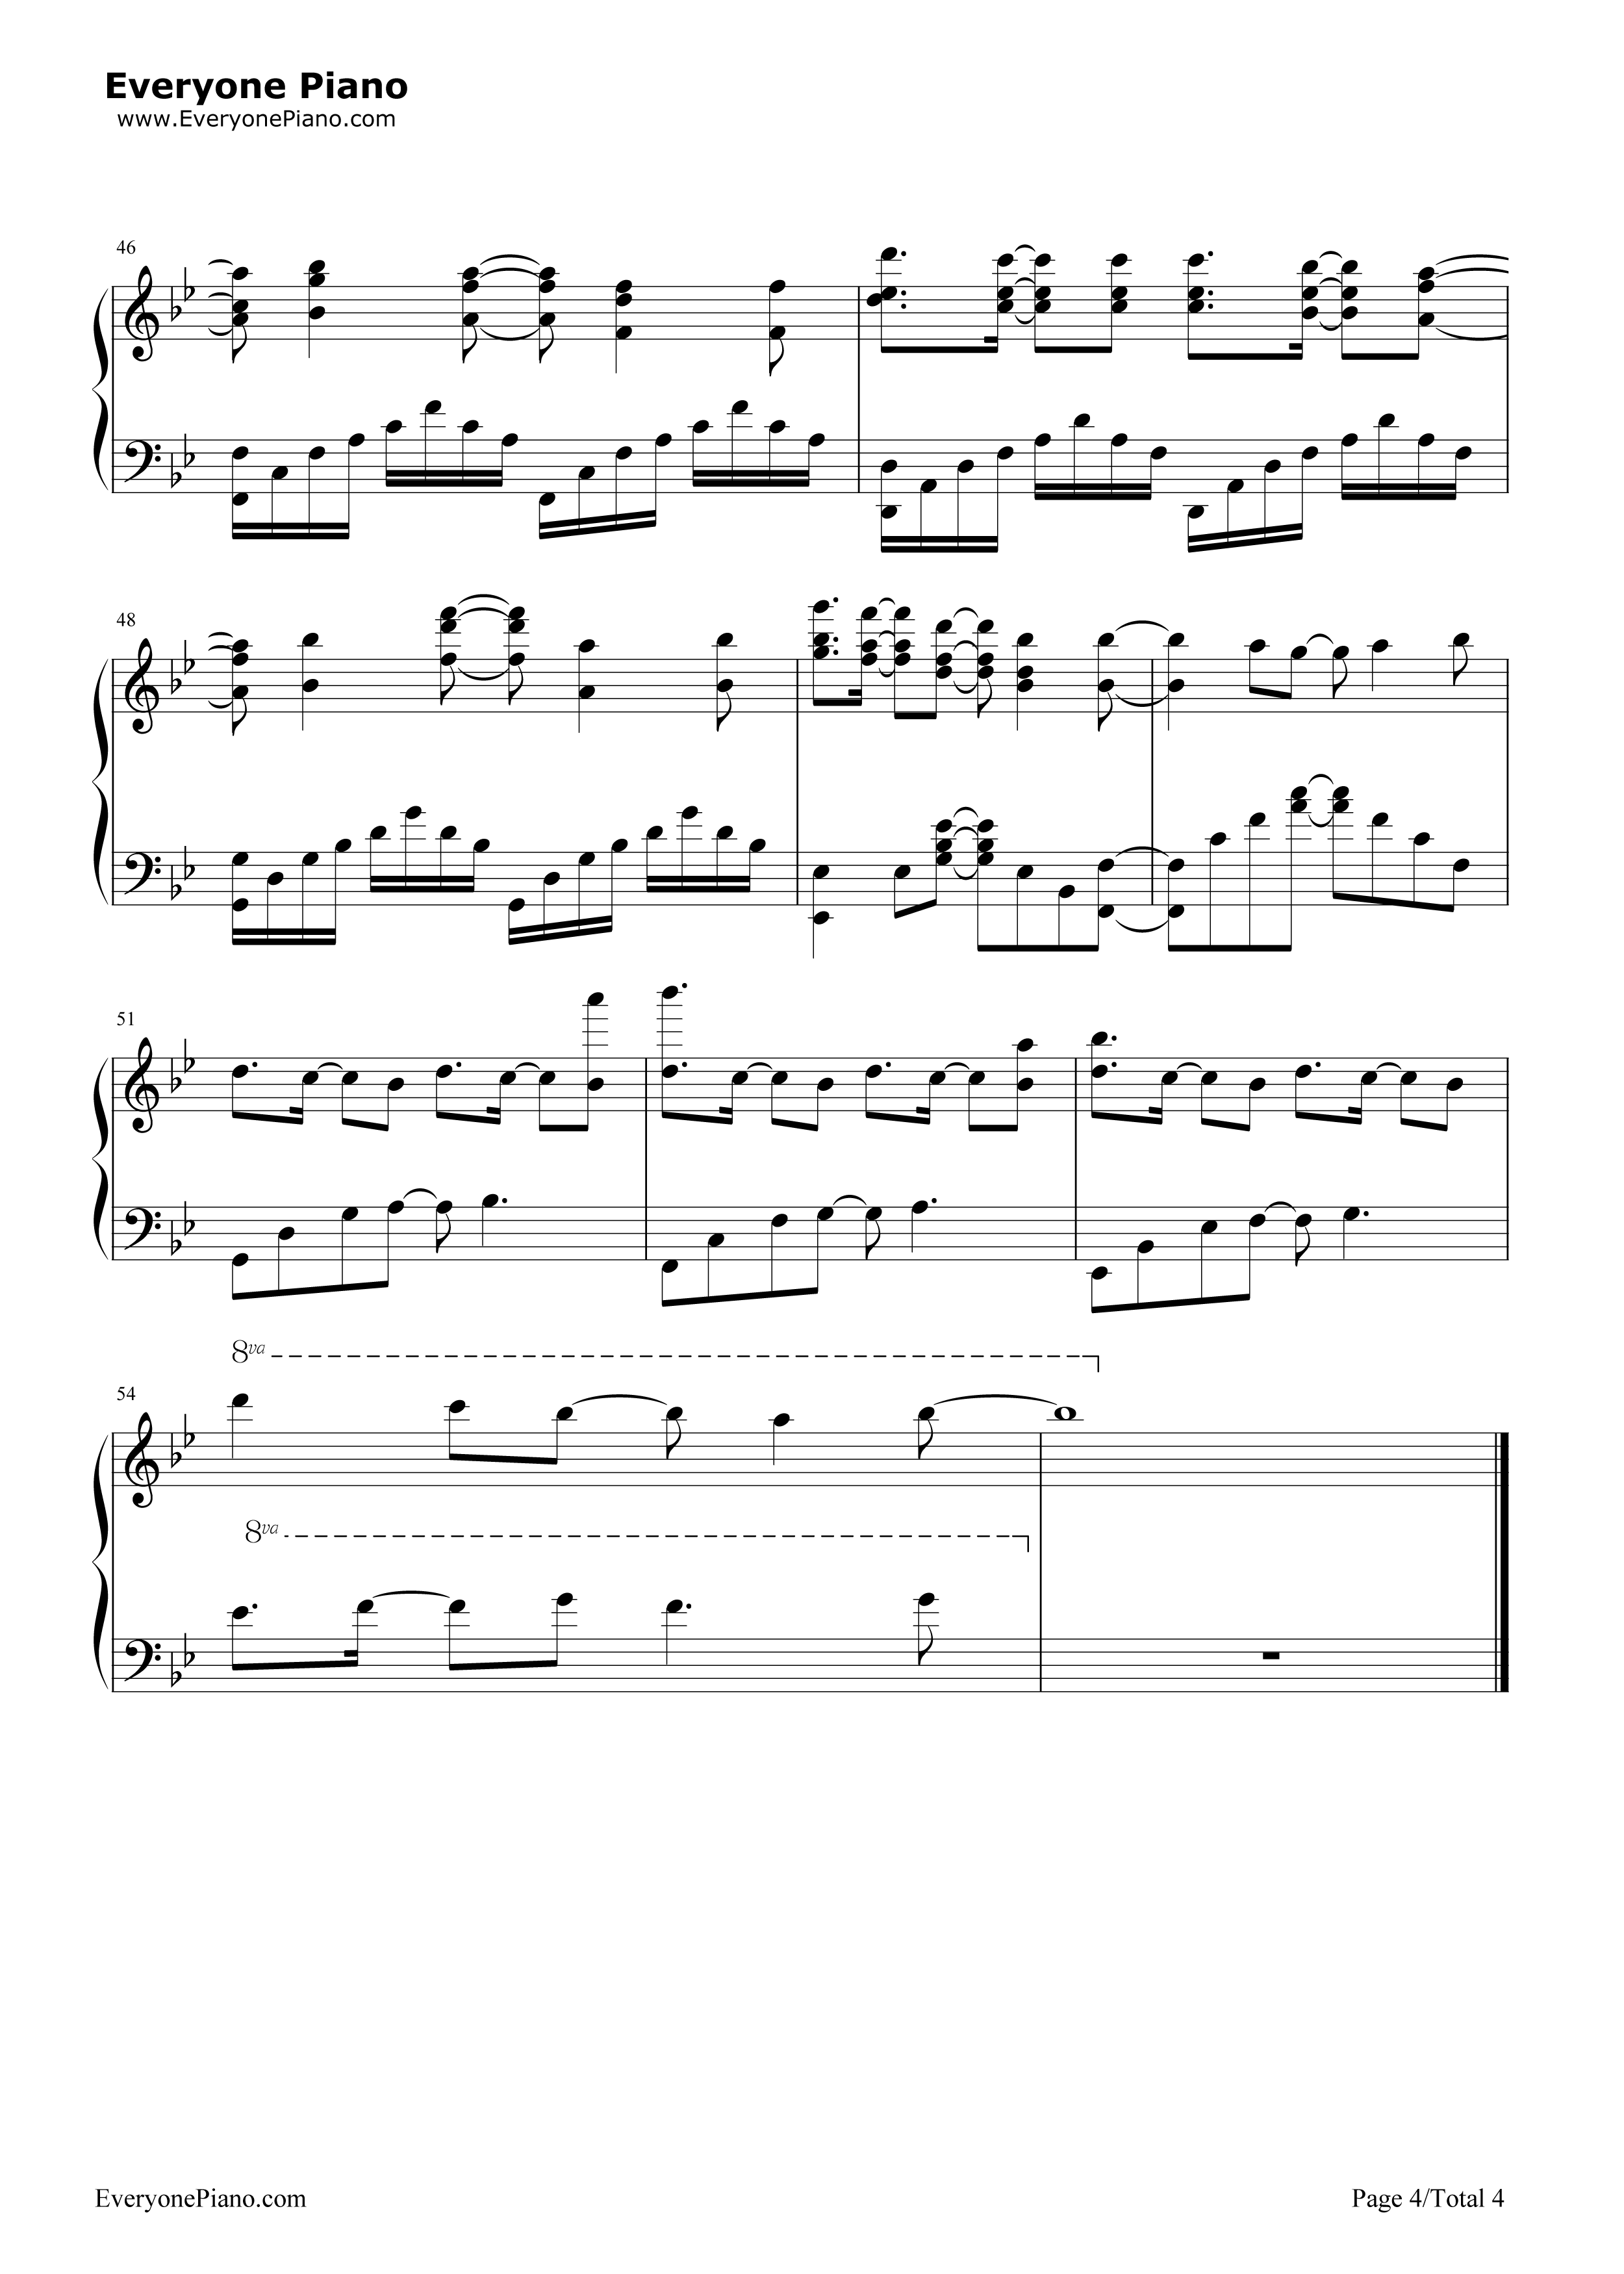 Unravel-Tokyo Ghoul OP Stave Preview 4-Free Piano Sheet Music u0026 Piano Chords